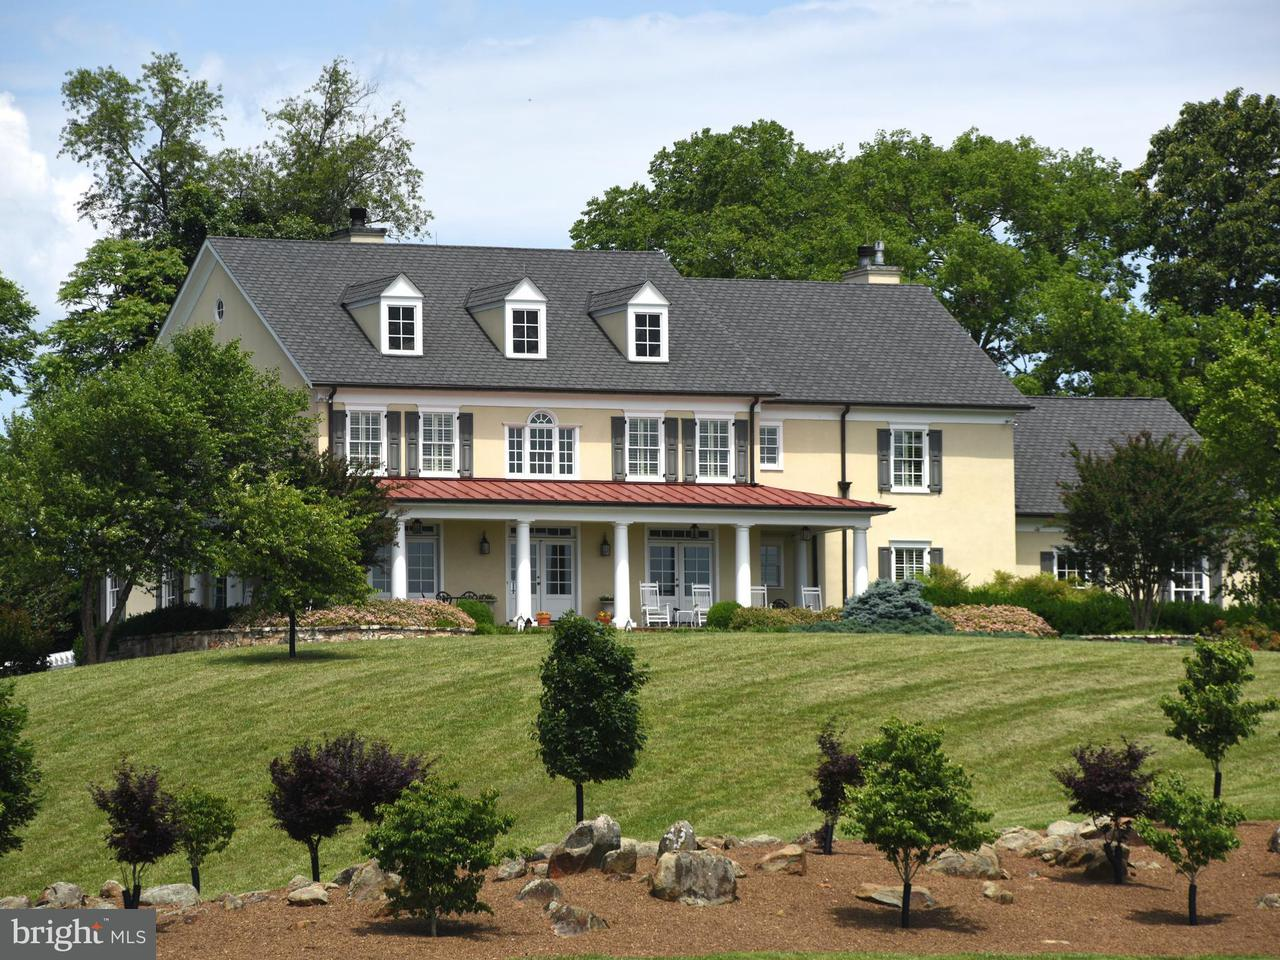 Single Family Home for Sale at 96 LYLE Lane 96 LYLE Lane Amissville, Virginia 20106 United States